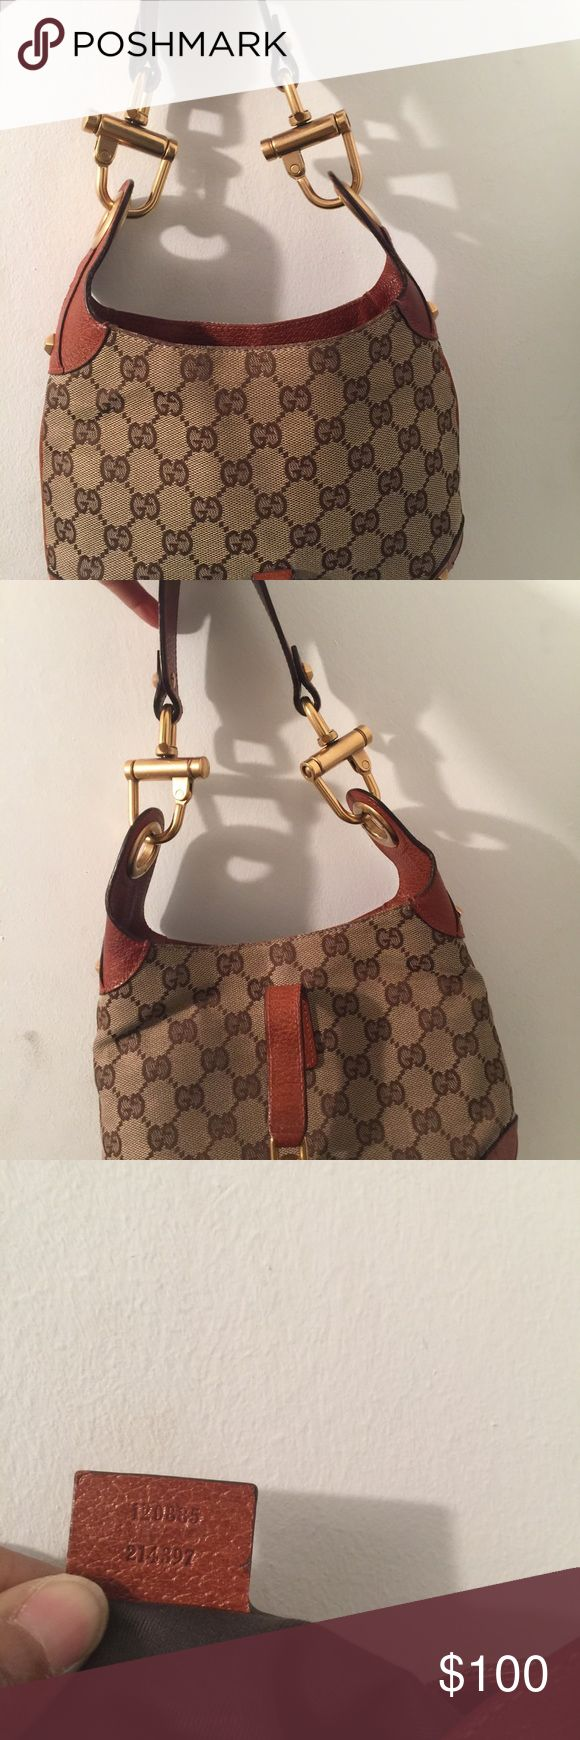 Authentic Gucci purse Small Gucci purse I purchase this from a posh seller pic's show front back serial code and inside. Still has good wear. Gucci Bags Mini Bags